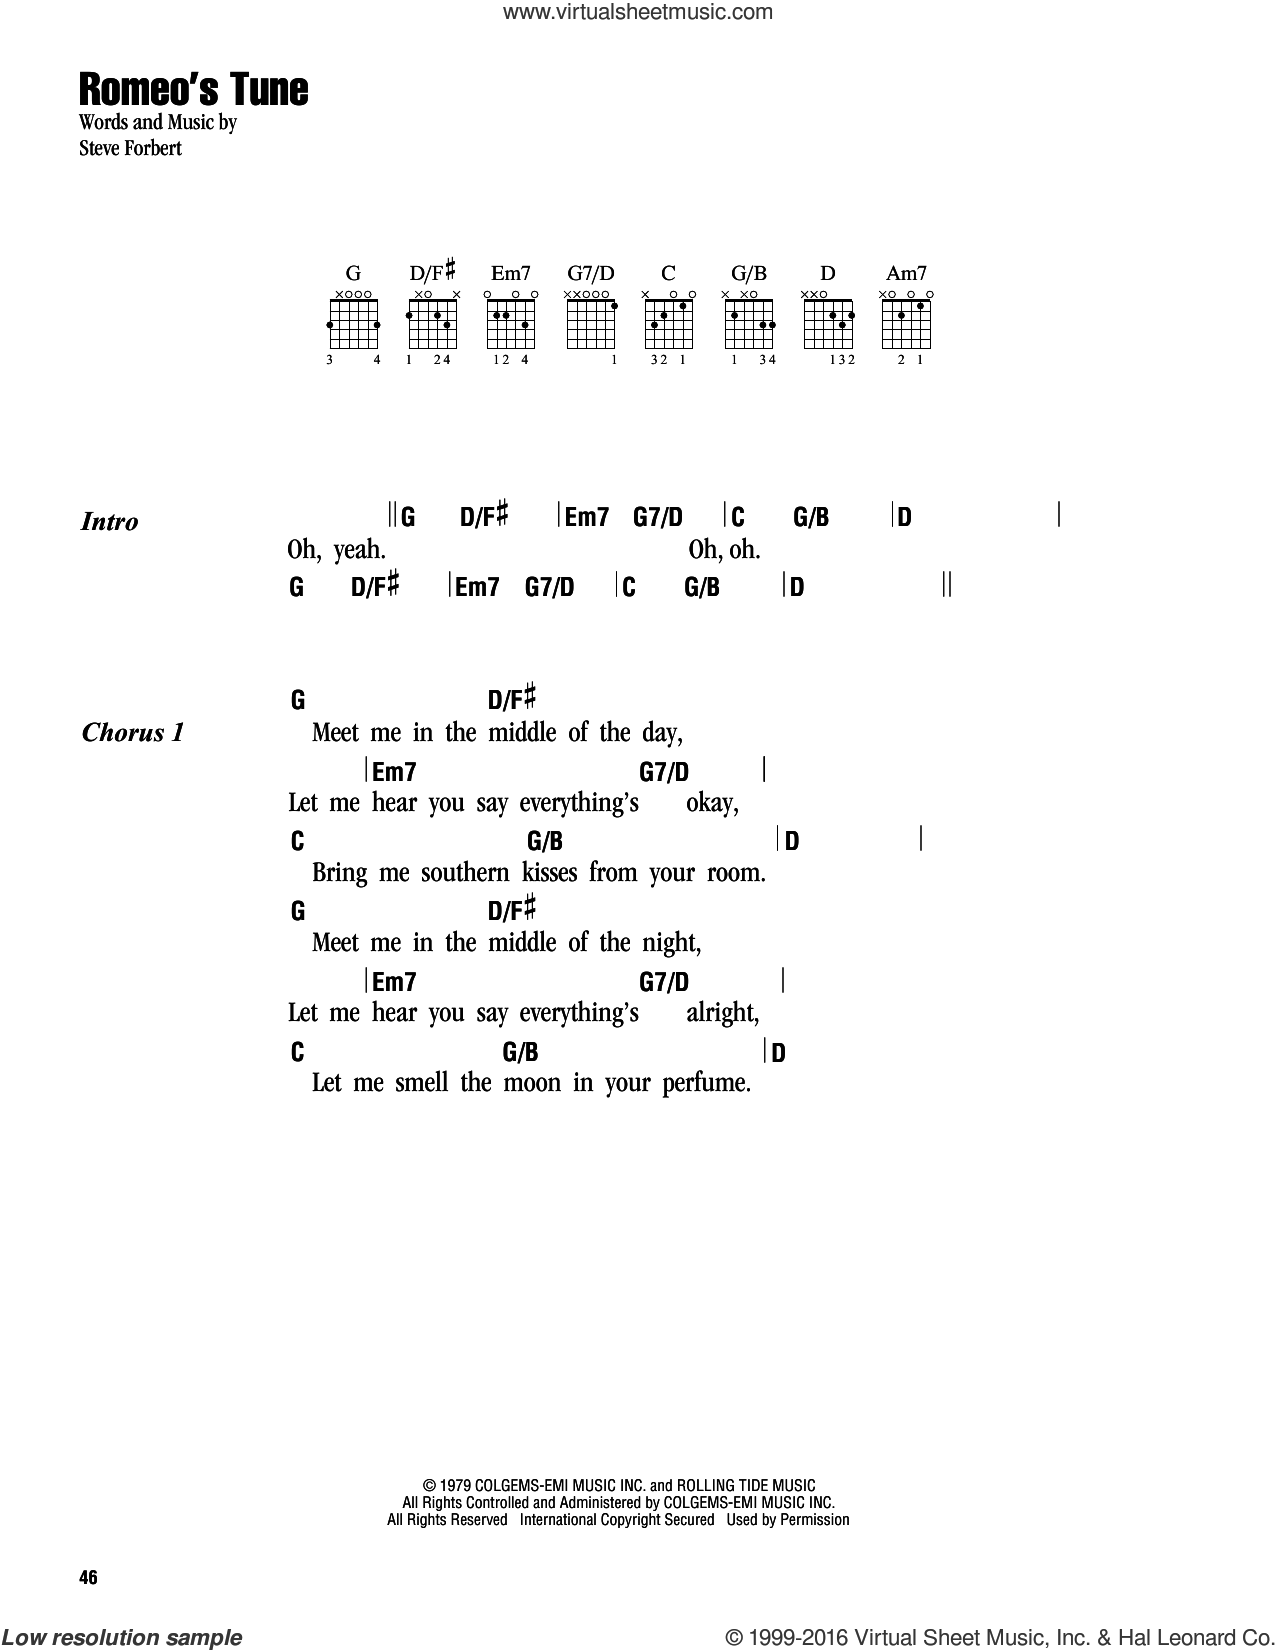 Romeo's Tune sheet music for guitar (chords) by Keith Urban